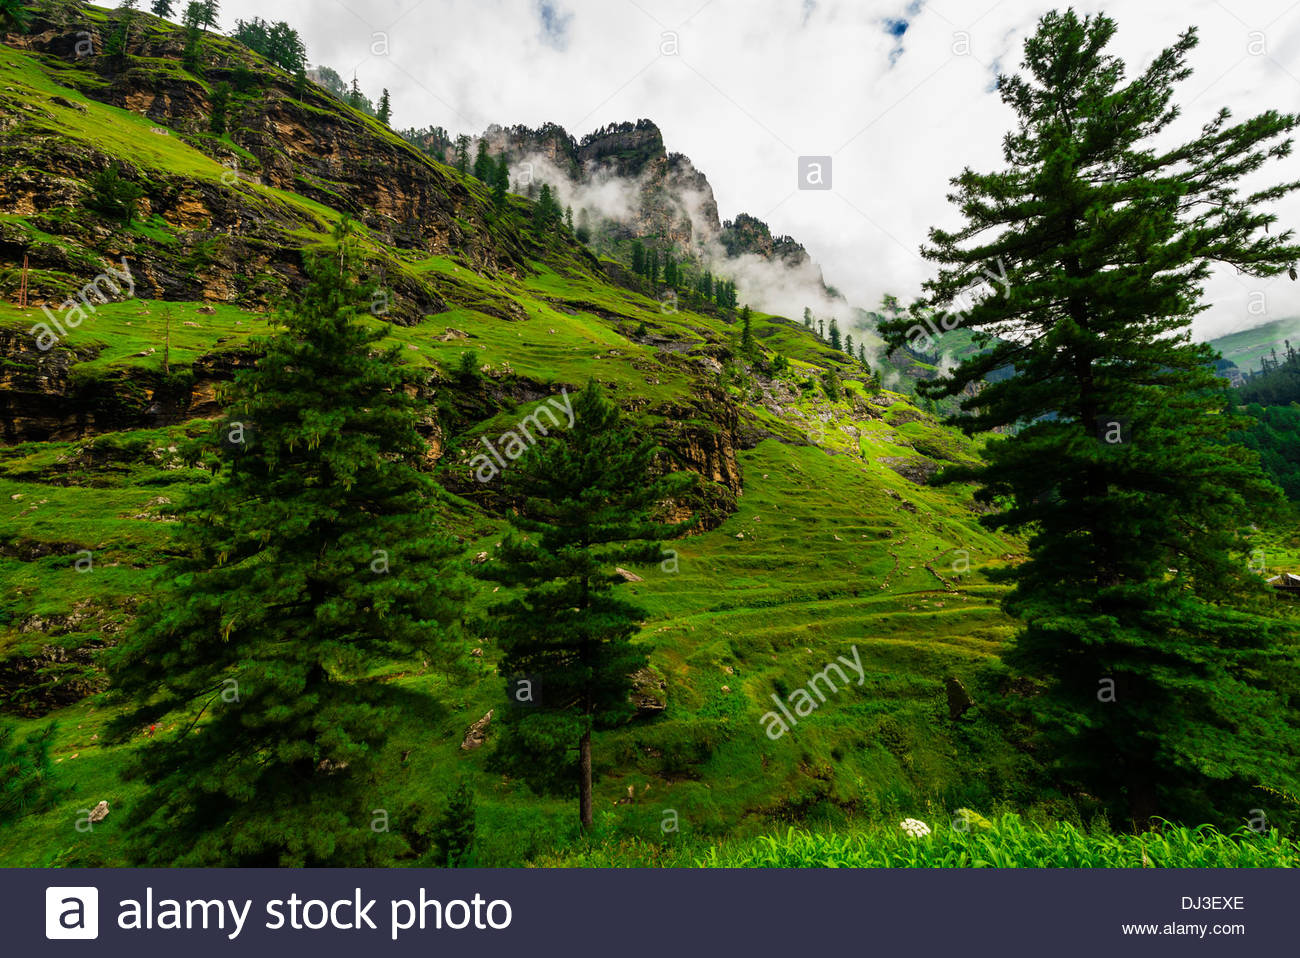 Rohtang Pass in Himachal Pradesh, India. The 13,000 foot pass, near Manali, in the Pir Panjal Range of the Himalayas connects the Kullu Valley with the Lahaul and Spiti Valleys. - Stock Image